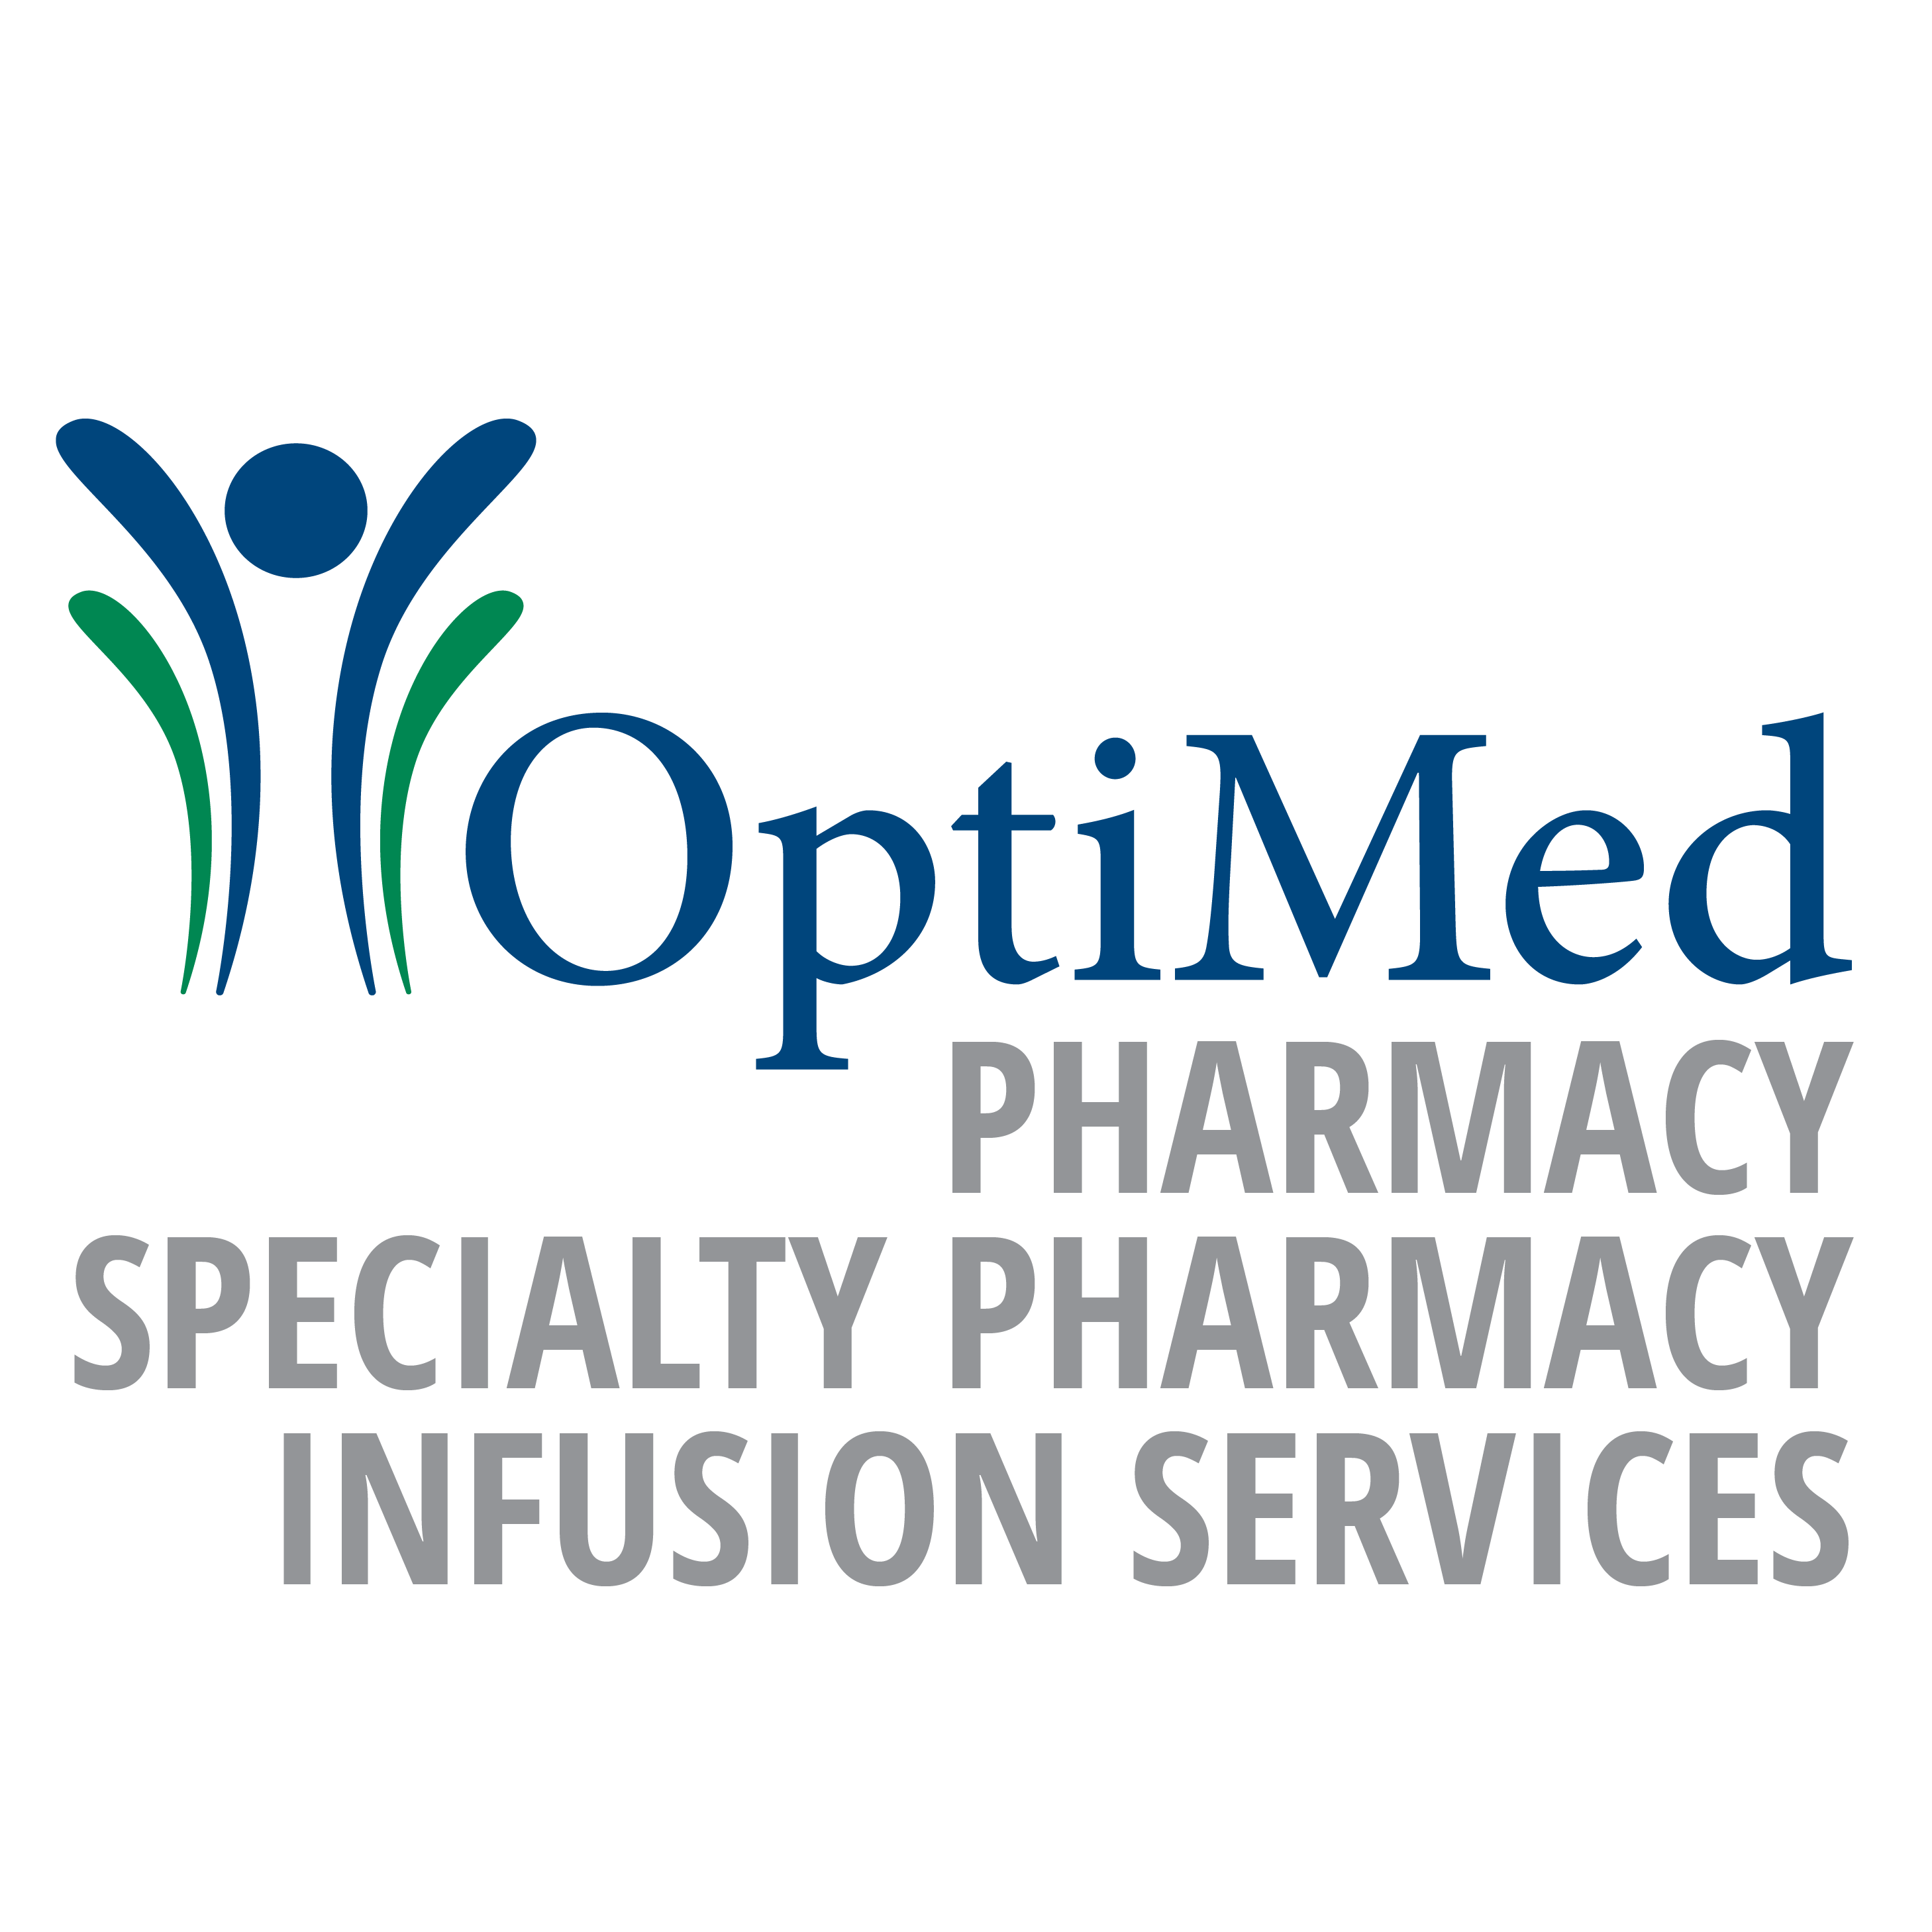 OptiMed Pharmacy (Oakland Drive)